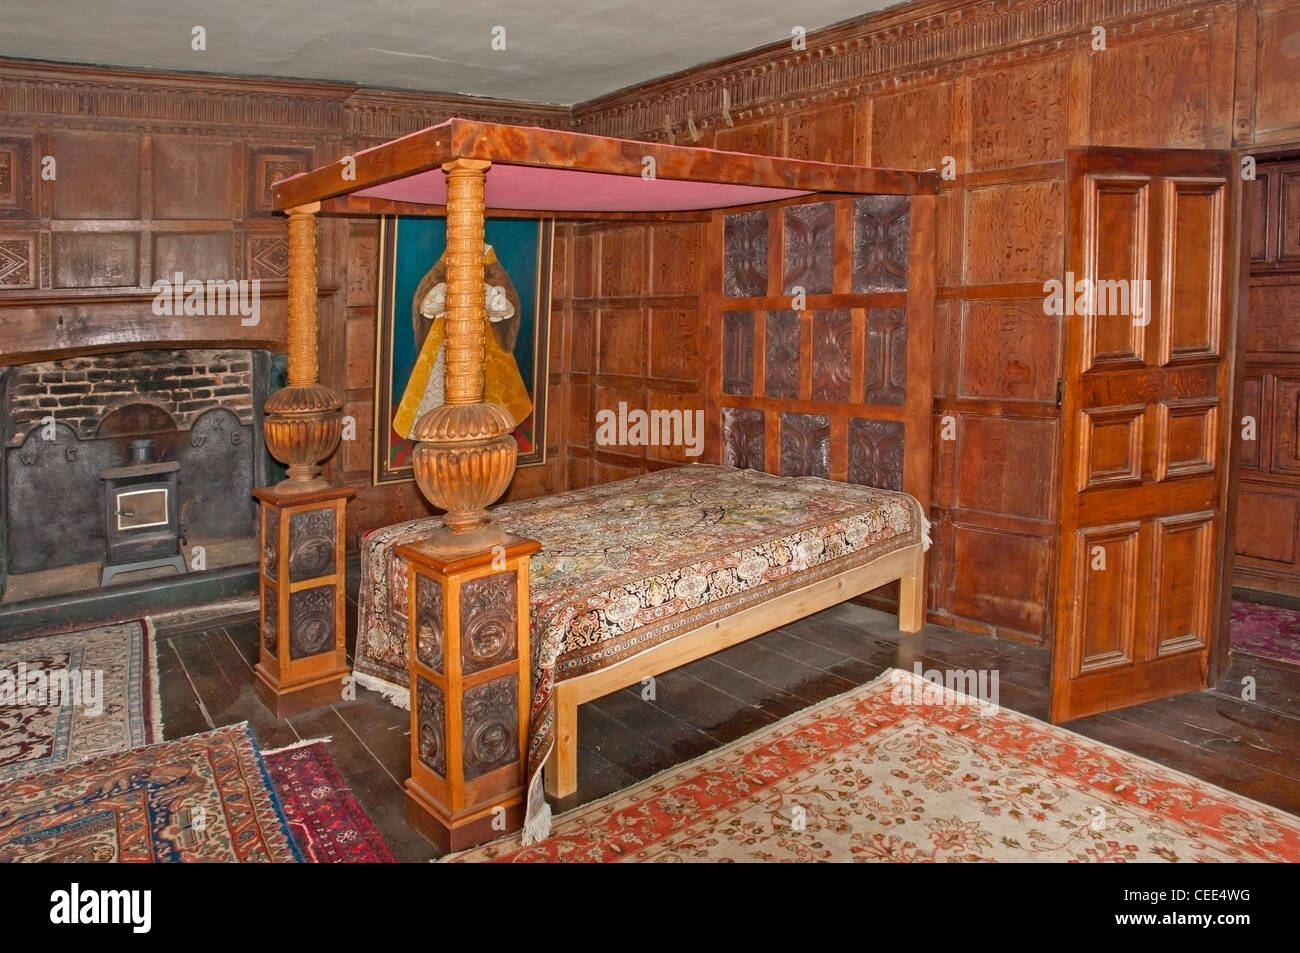 4 Poster Princess Bed Four Poster Bed In Castle Lodge Ludlow Shropshire A